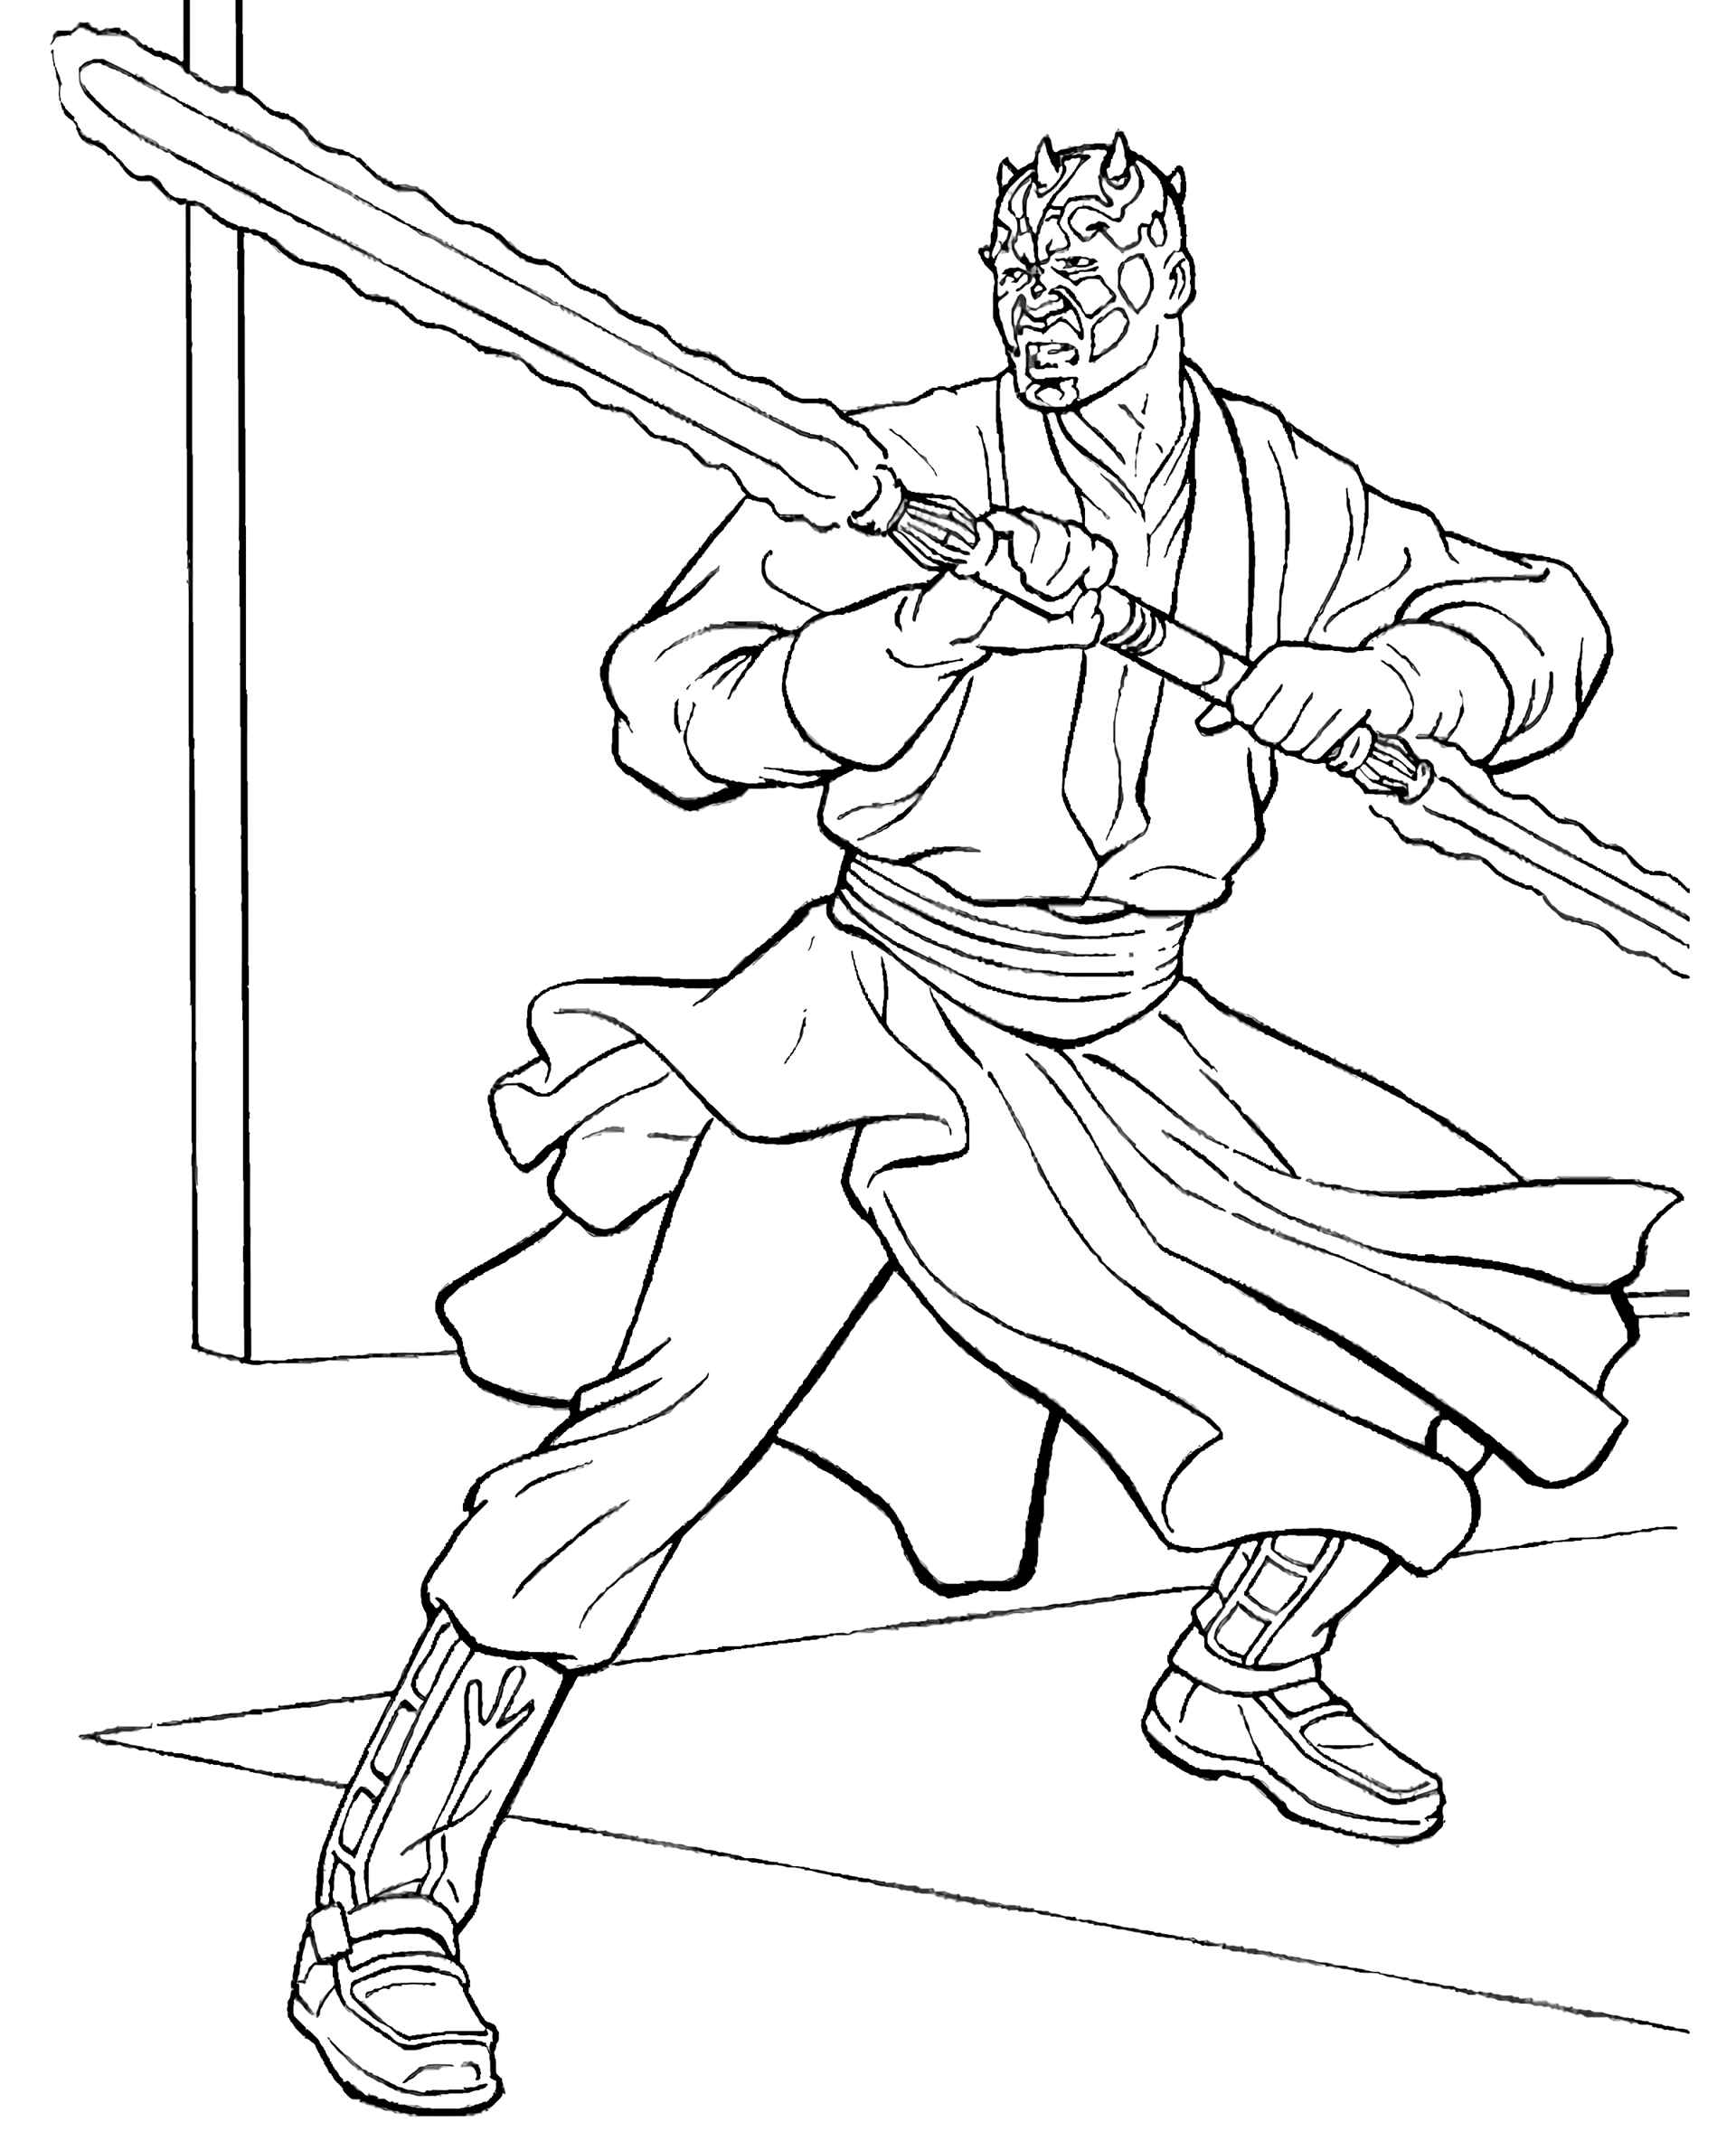 Darth Maul From Star Wars With Laser Weapons Coloring Page